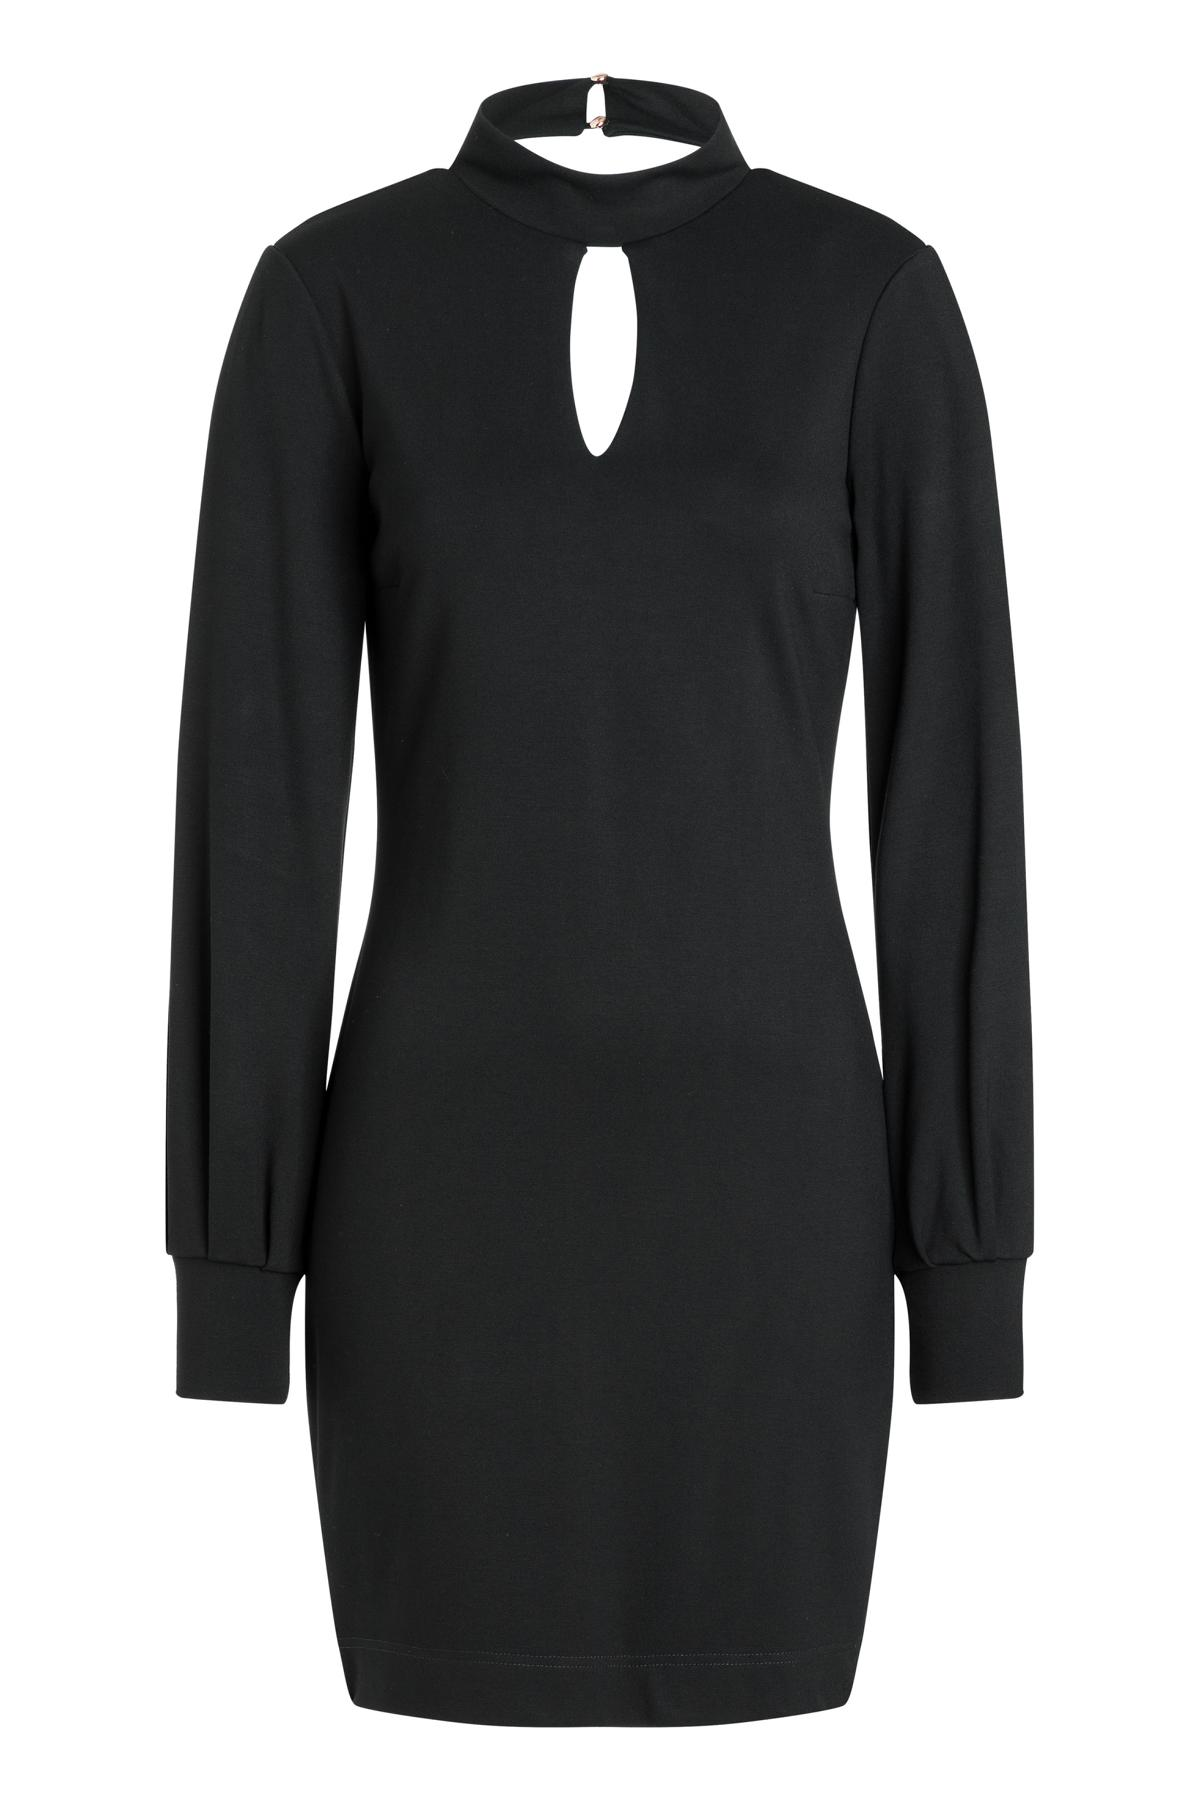 Ana Alcazar Puff Sleeve Dress Resya Black